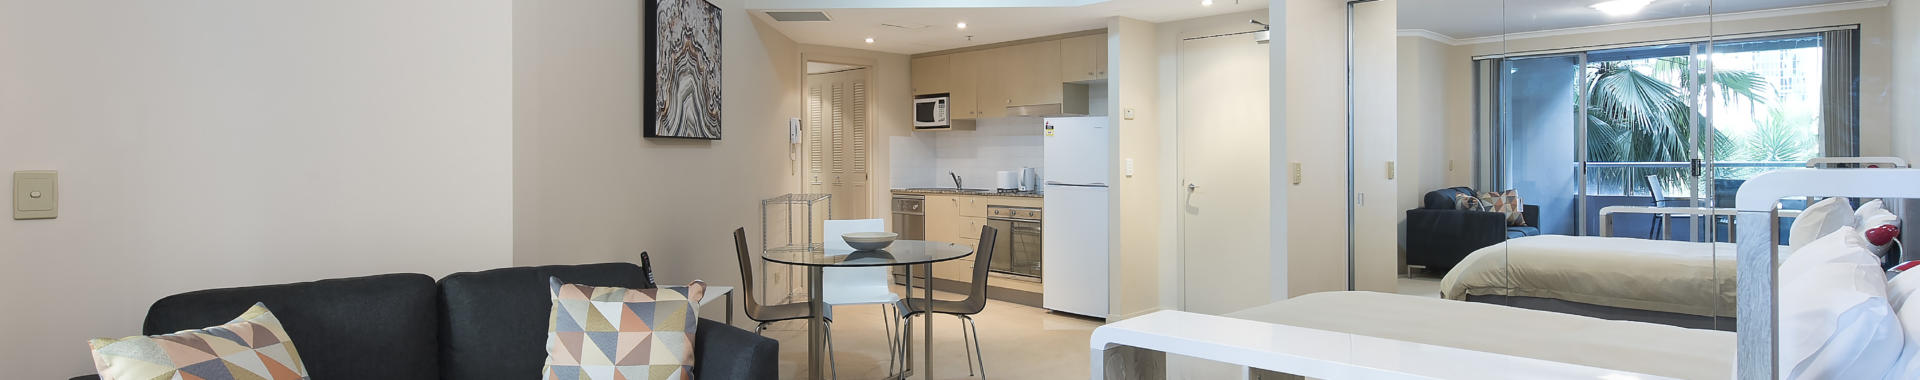 Chatswood Help 1 bed studio corporate apartment lounge